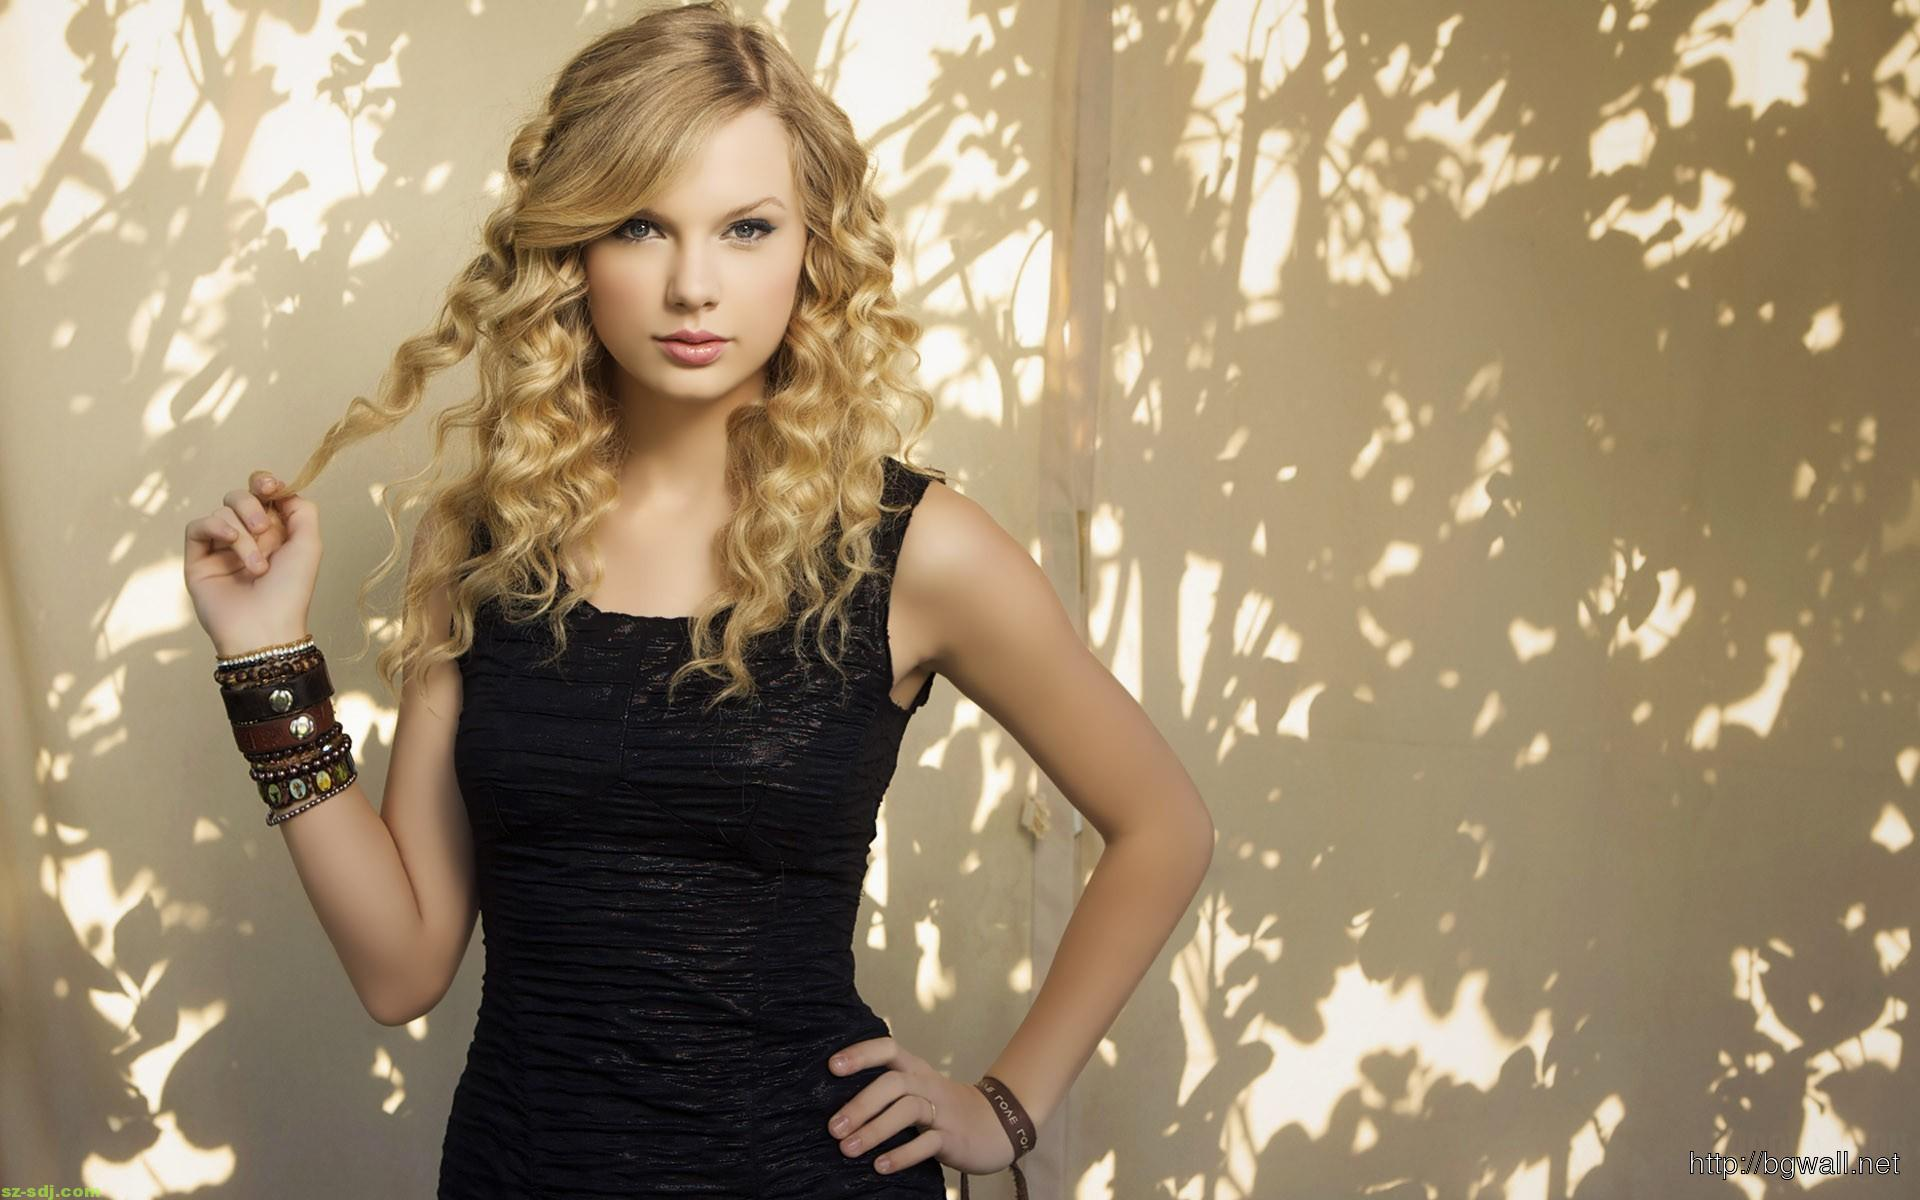 2014 Taylor Swift Wallpaper Hd Background Wallpaper HD 1920x1200